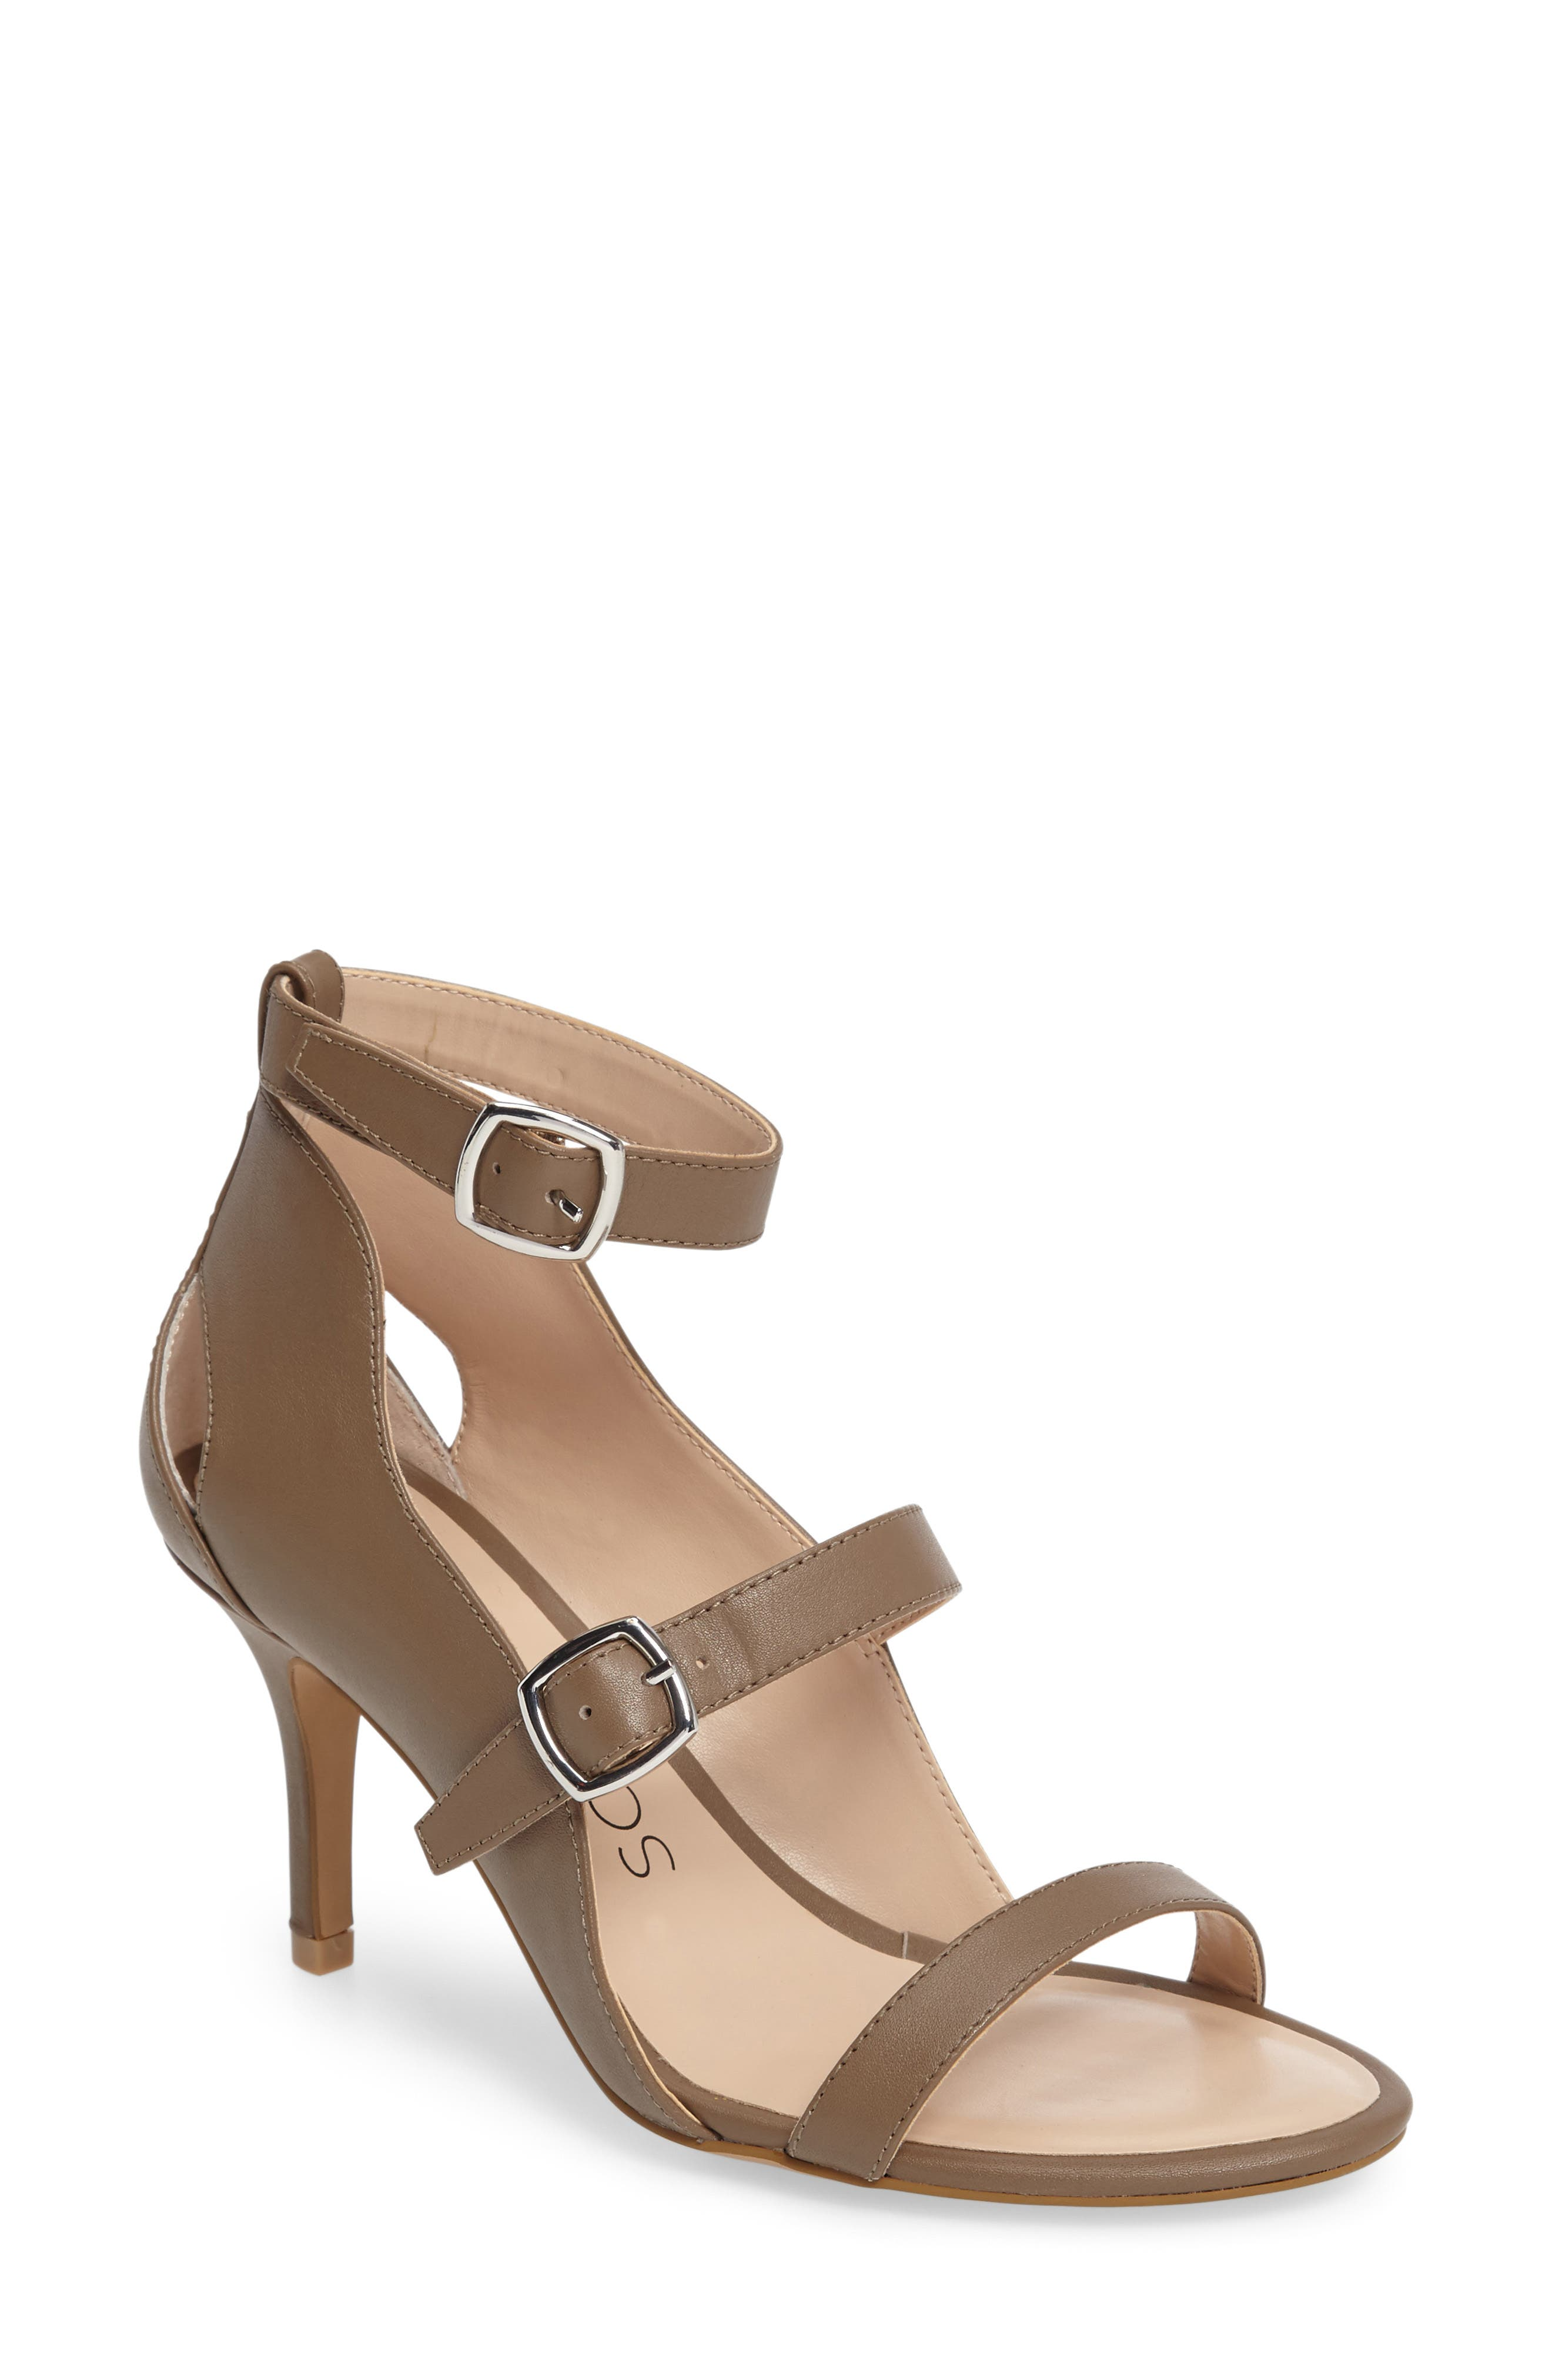 SOLE SOCIETY Carnie Scalloped Strappy Sandal